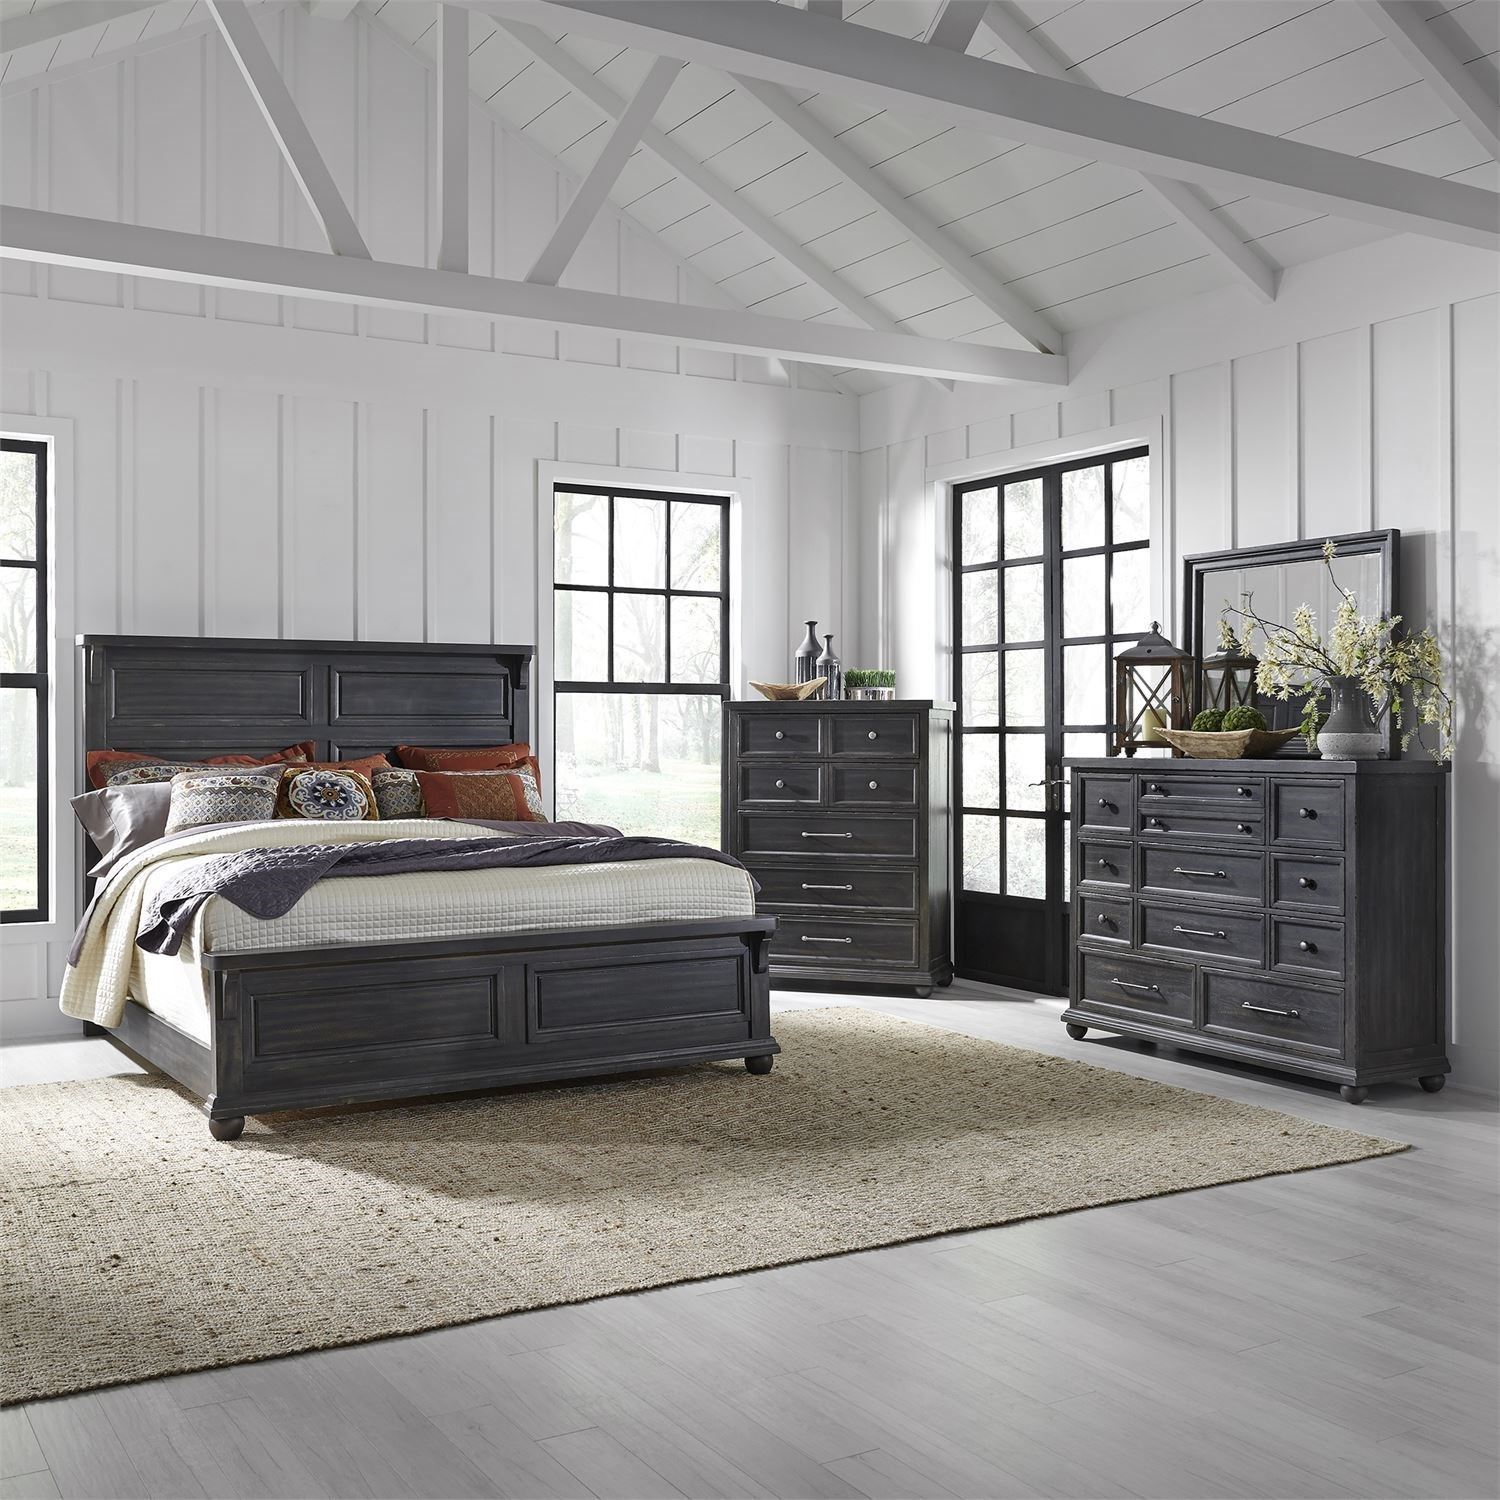 Harvest Home Queen Bedroom Group by Liberty Furniture at Standard Furniture